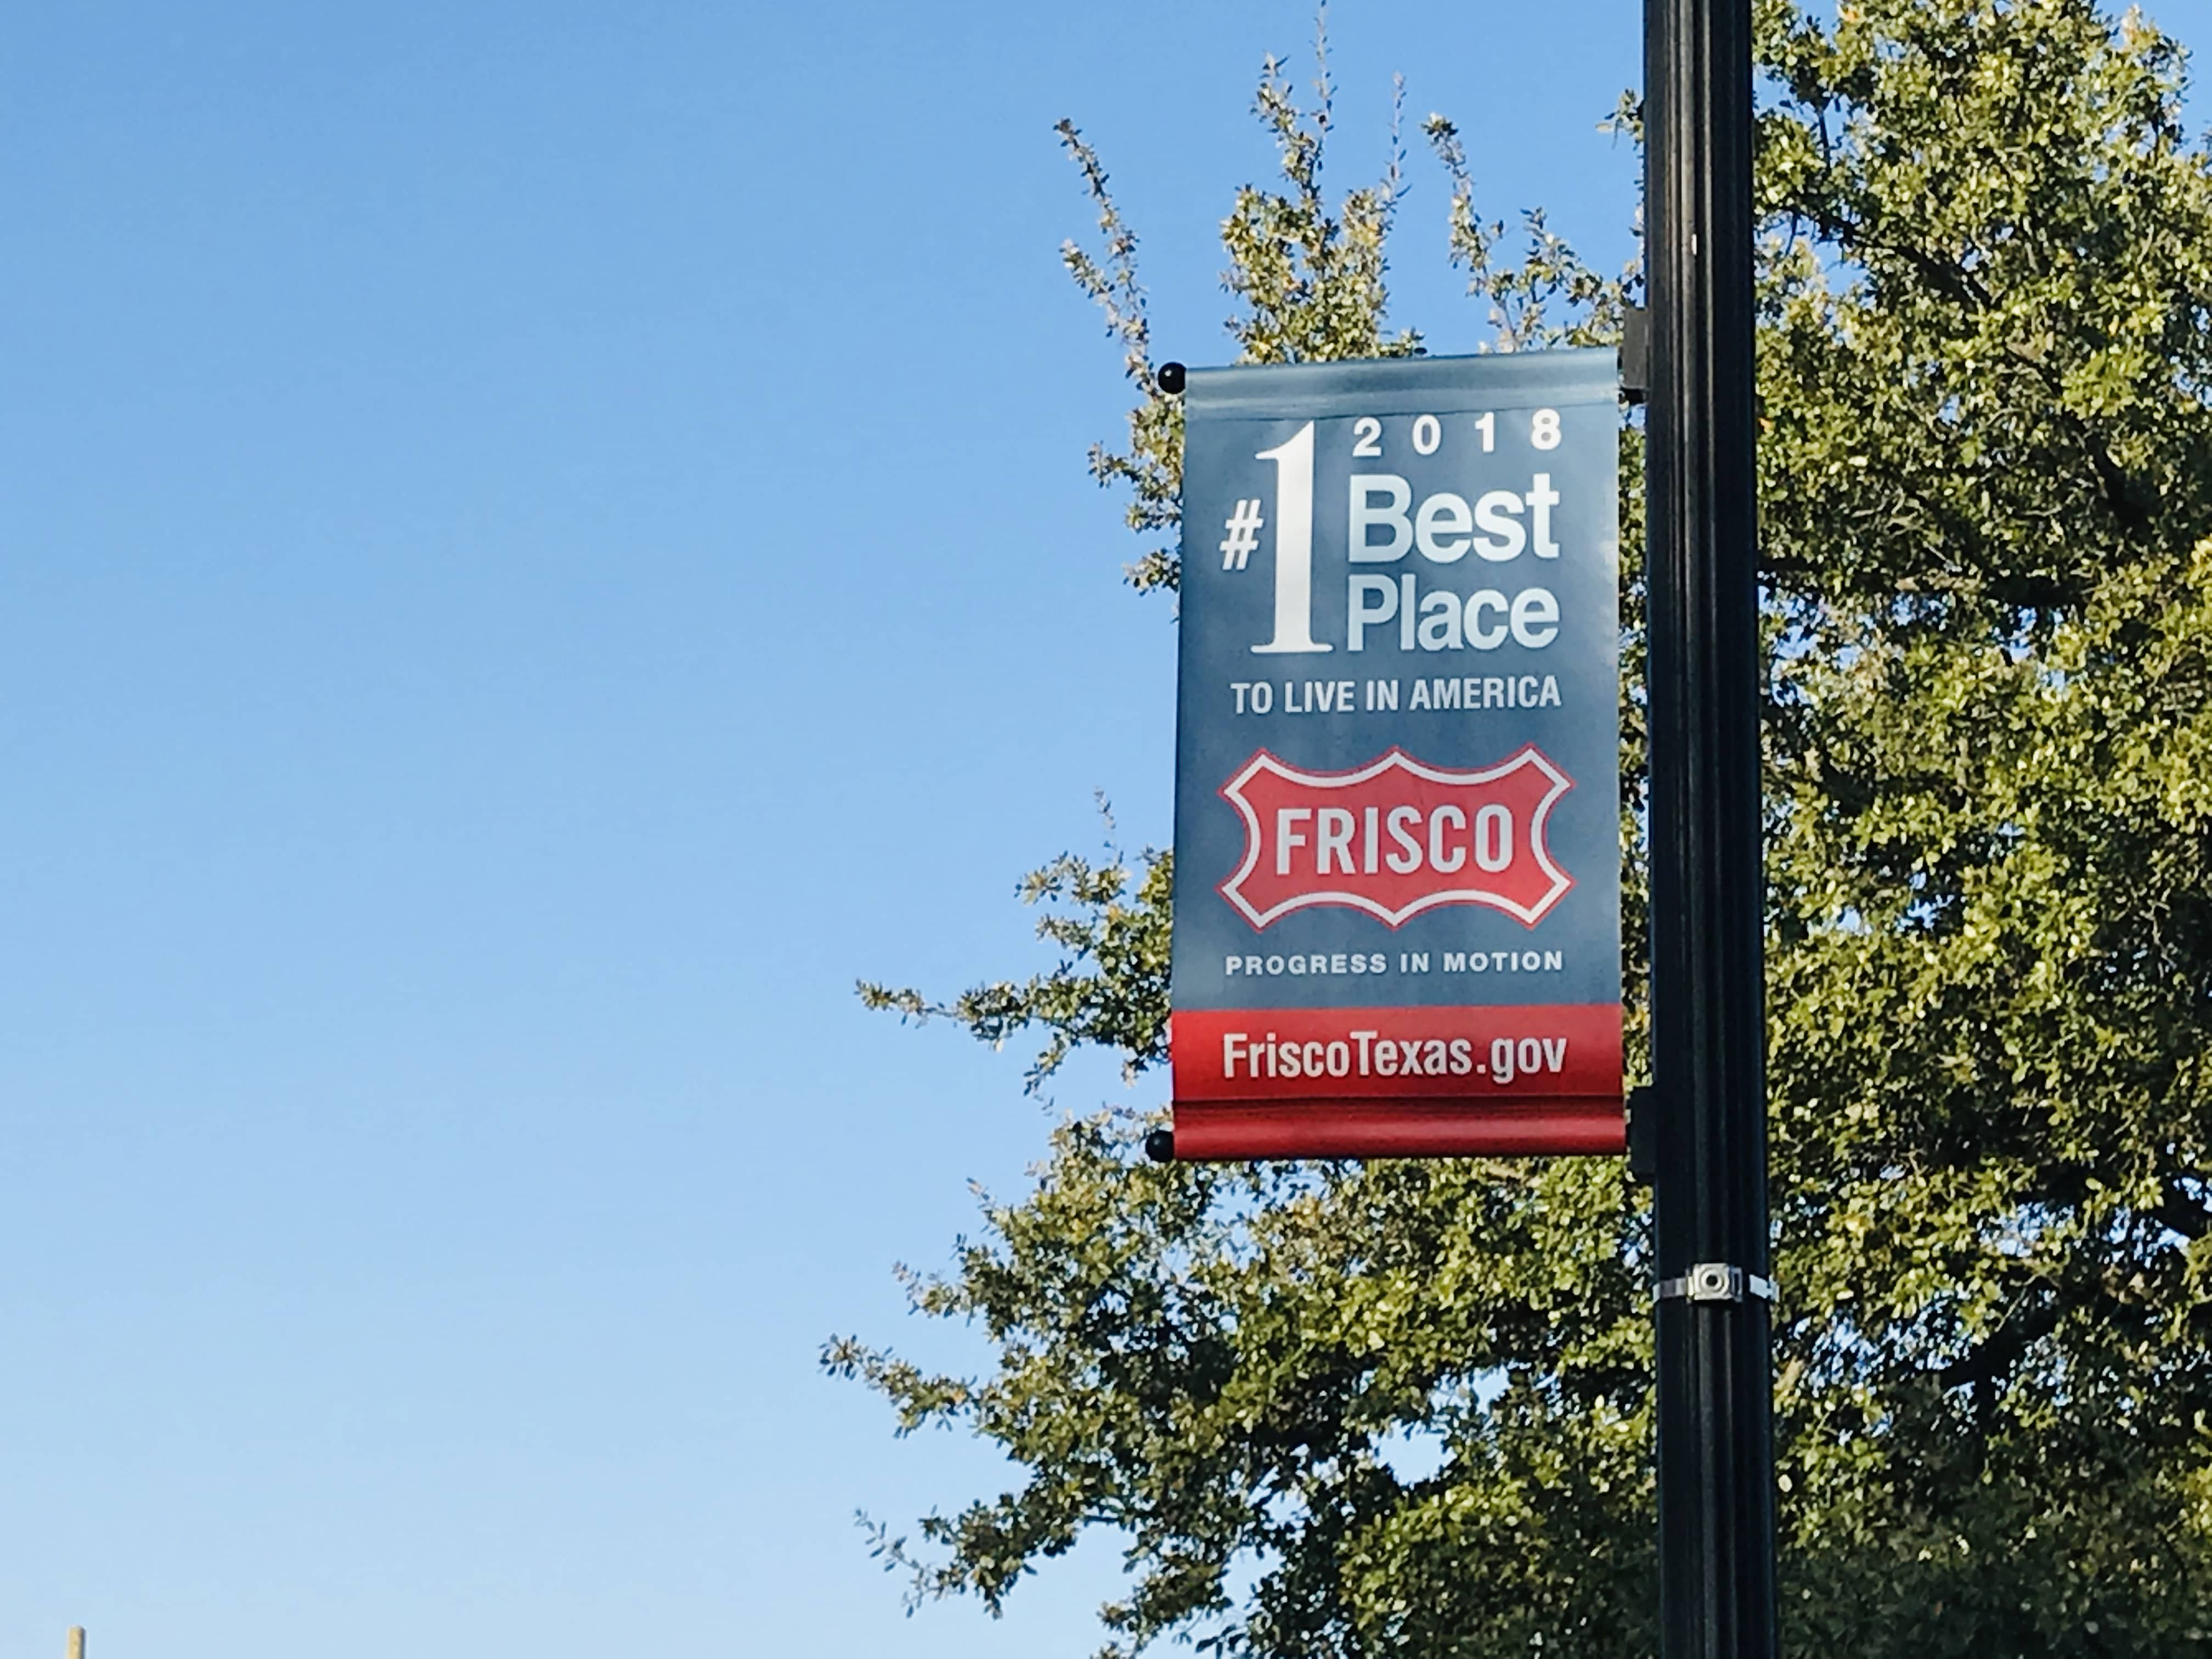 Frisco Texas Best Place to Live